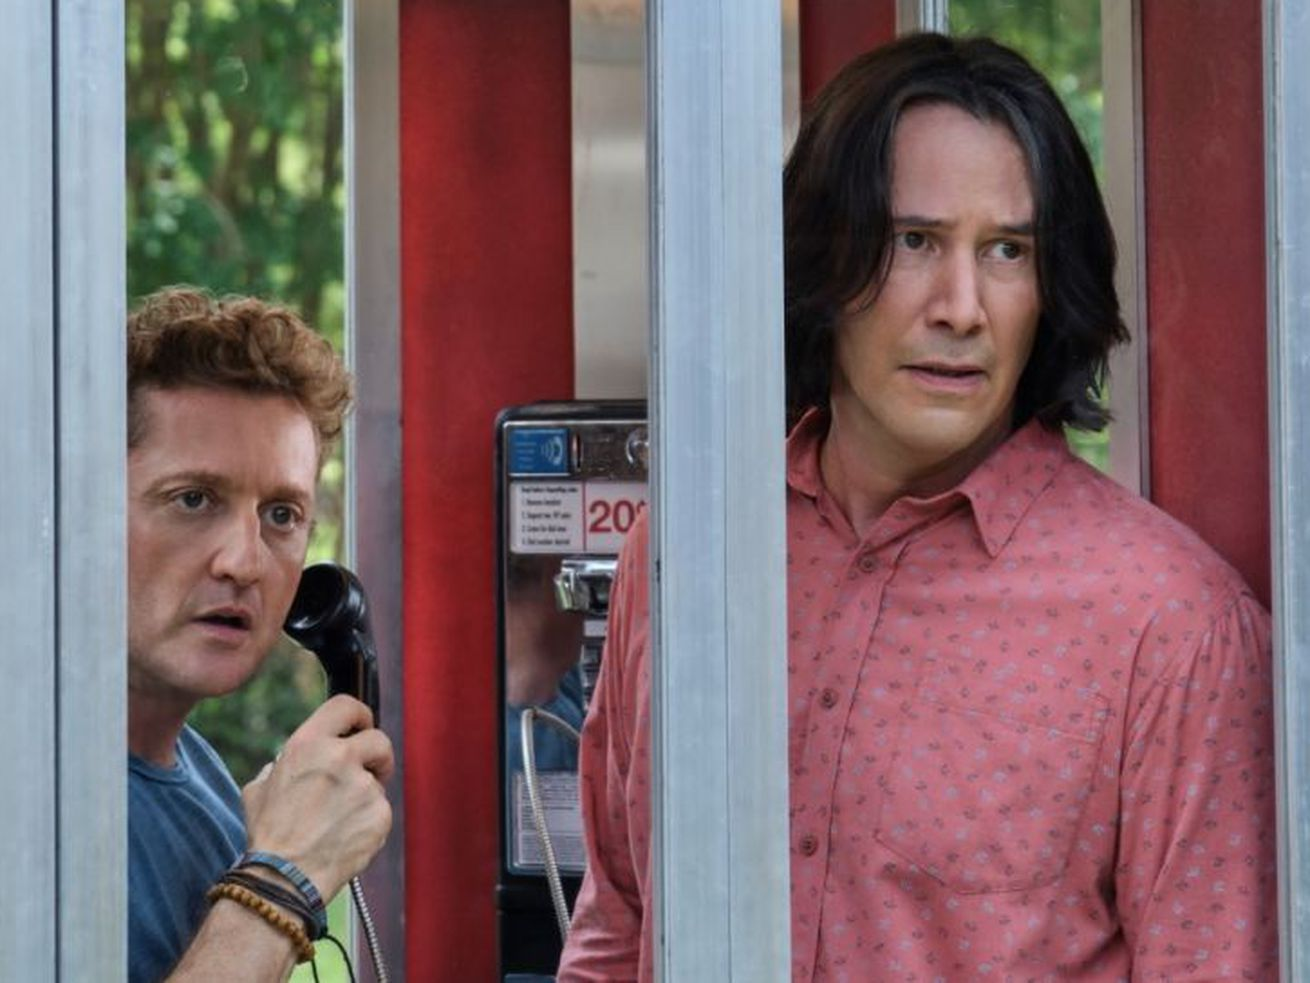 Alex Winter and Keanu Reeves in Bill and Ted Face the Music, standing in a phone booth.